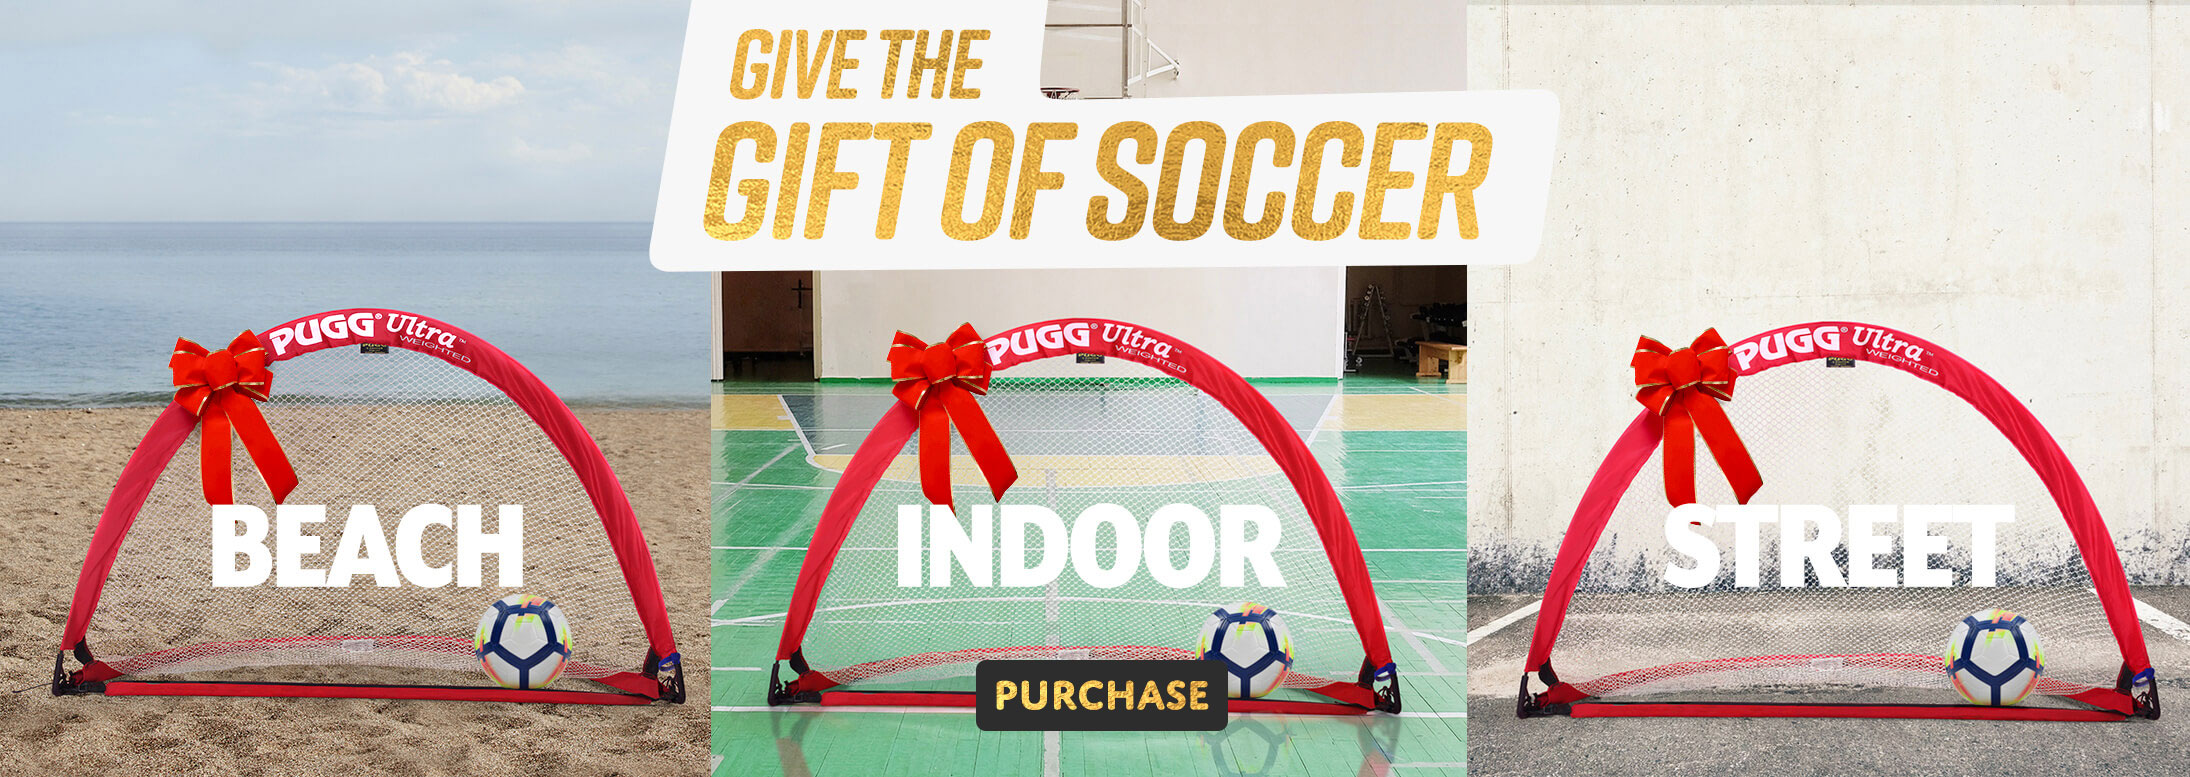 give the gift of soccer pugg weighted pop up soccer goals